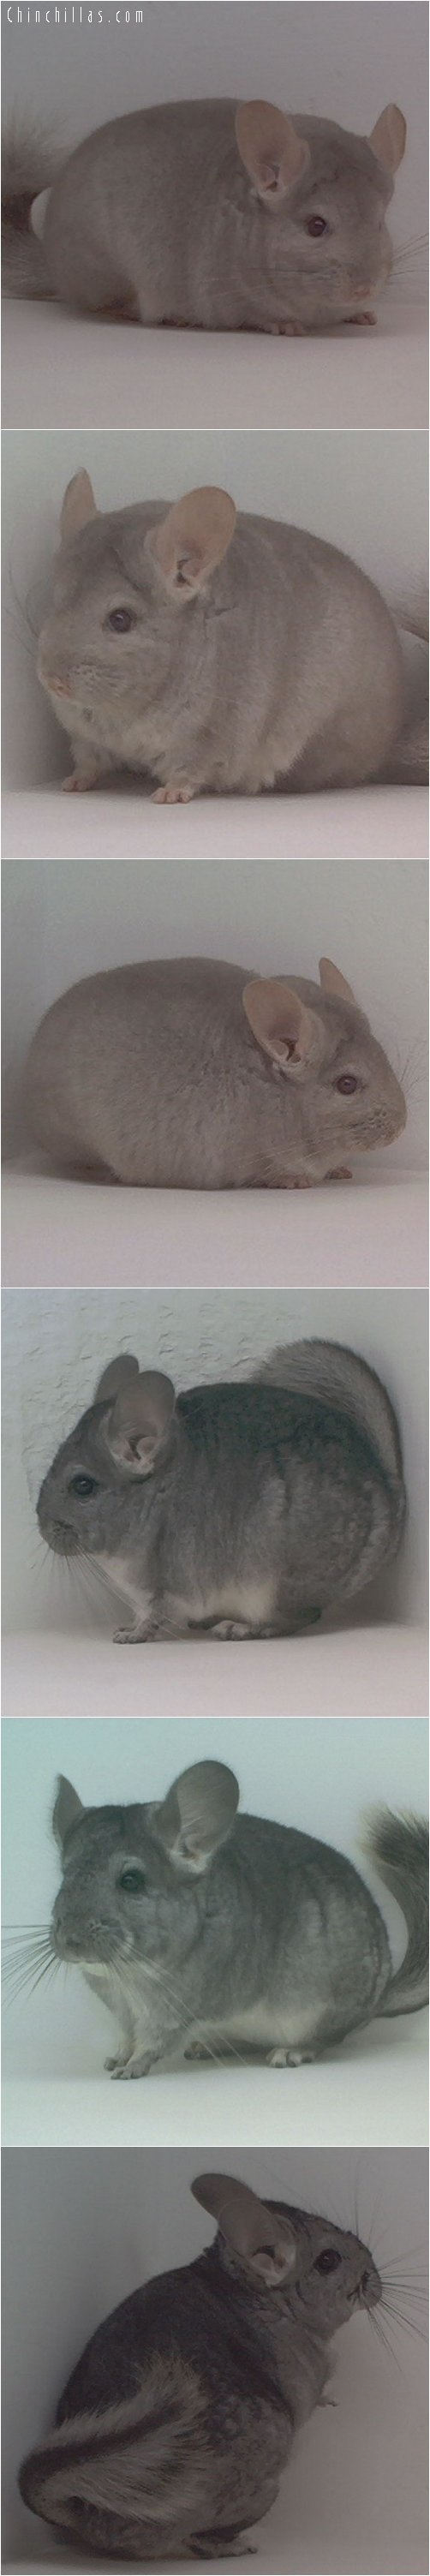 Lot 38 Violet & Beige Violet Producing Pair Chinchilla